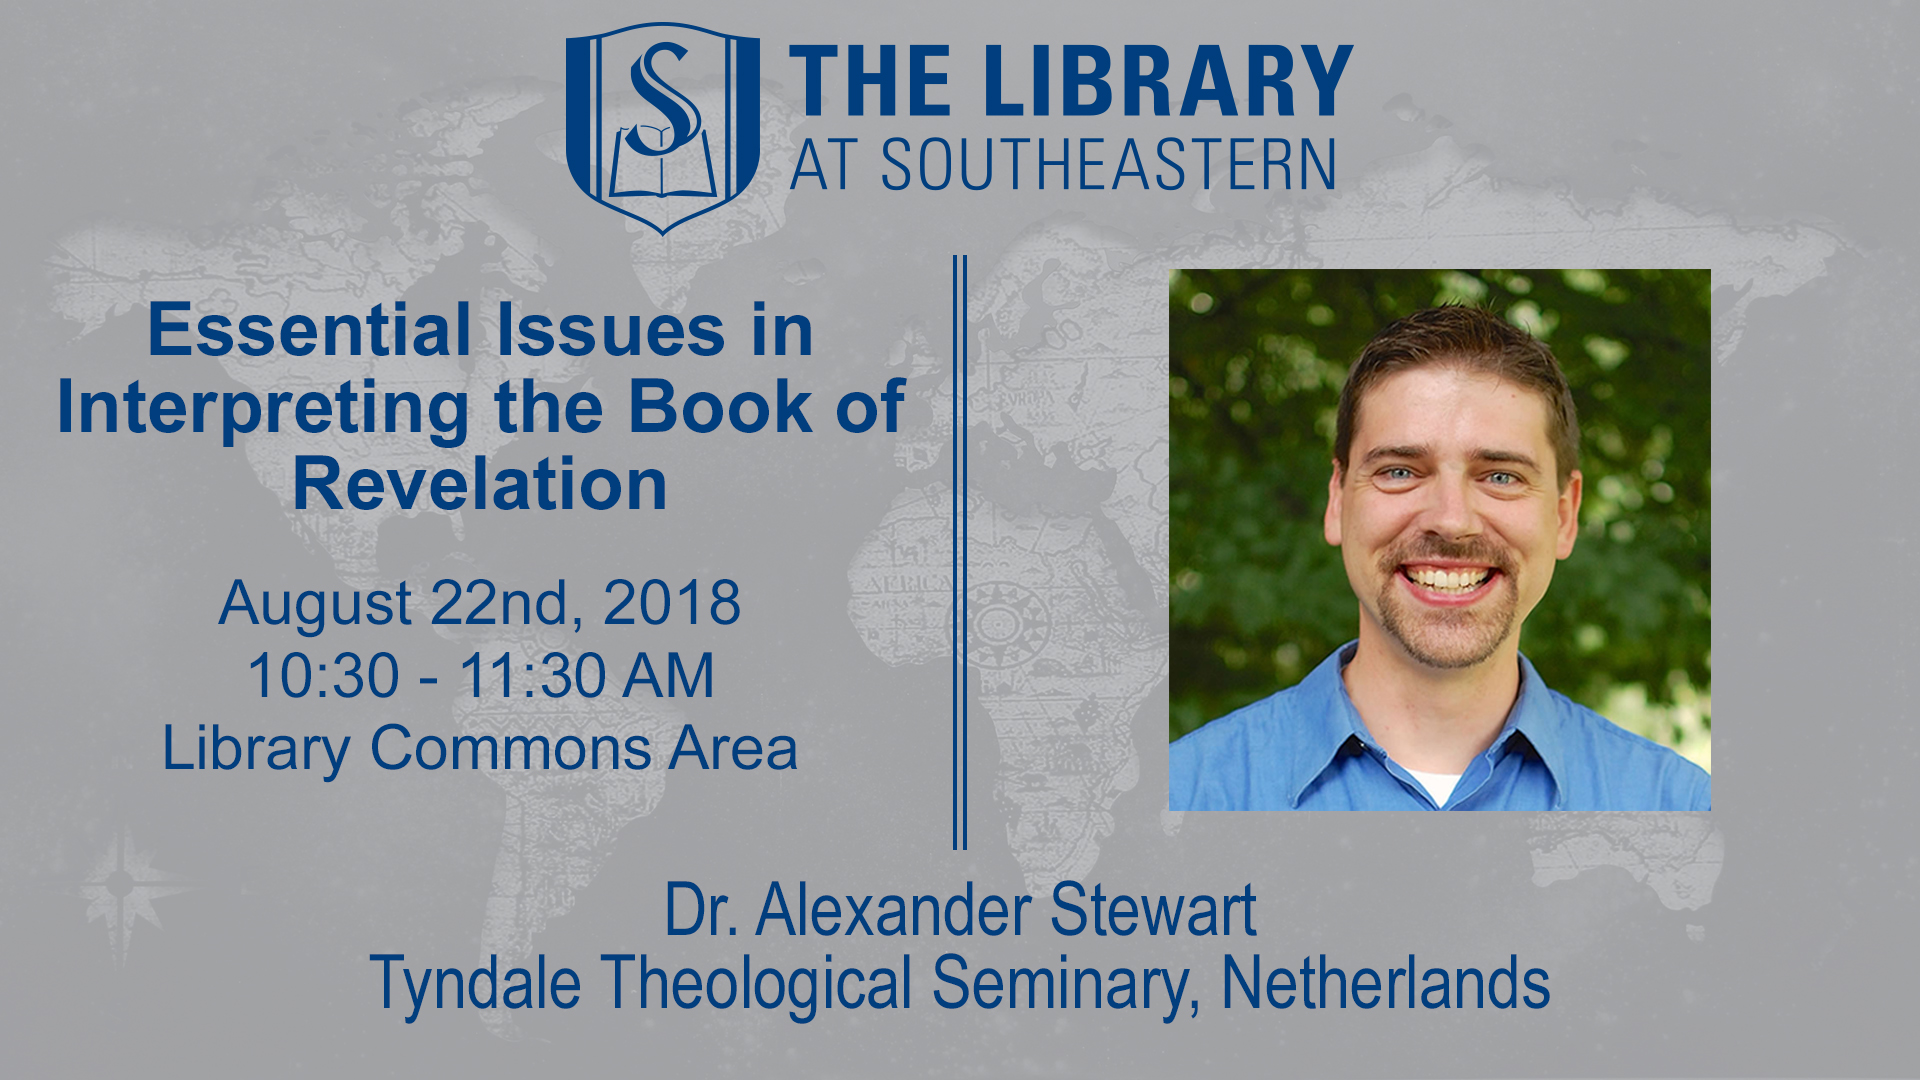 Meet Our Visiting Scholar: Essential Issues in Interpreting Revelation